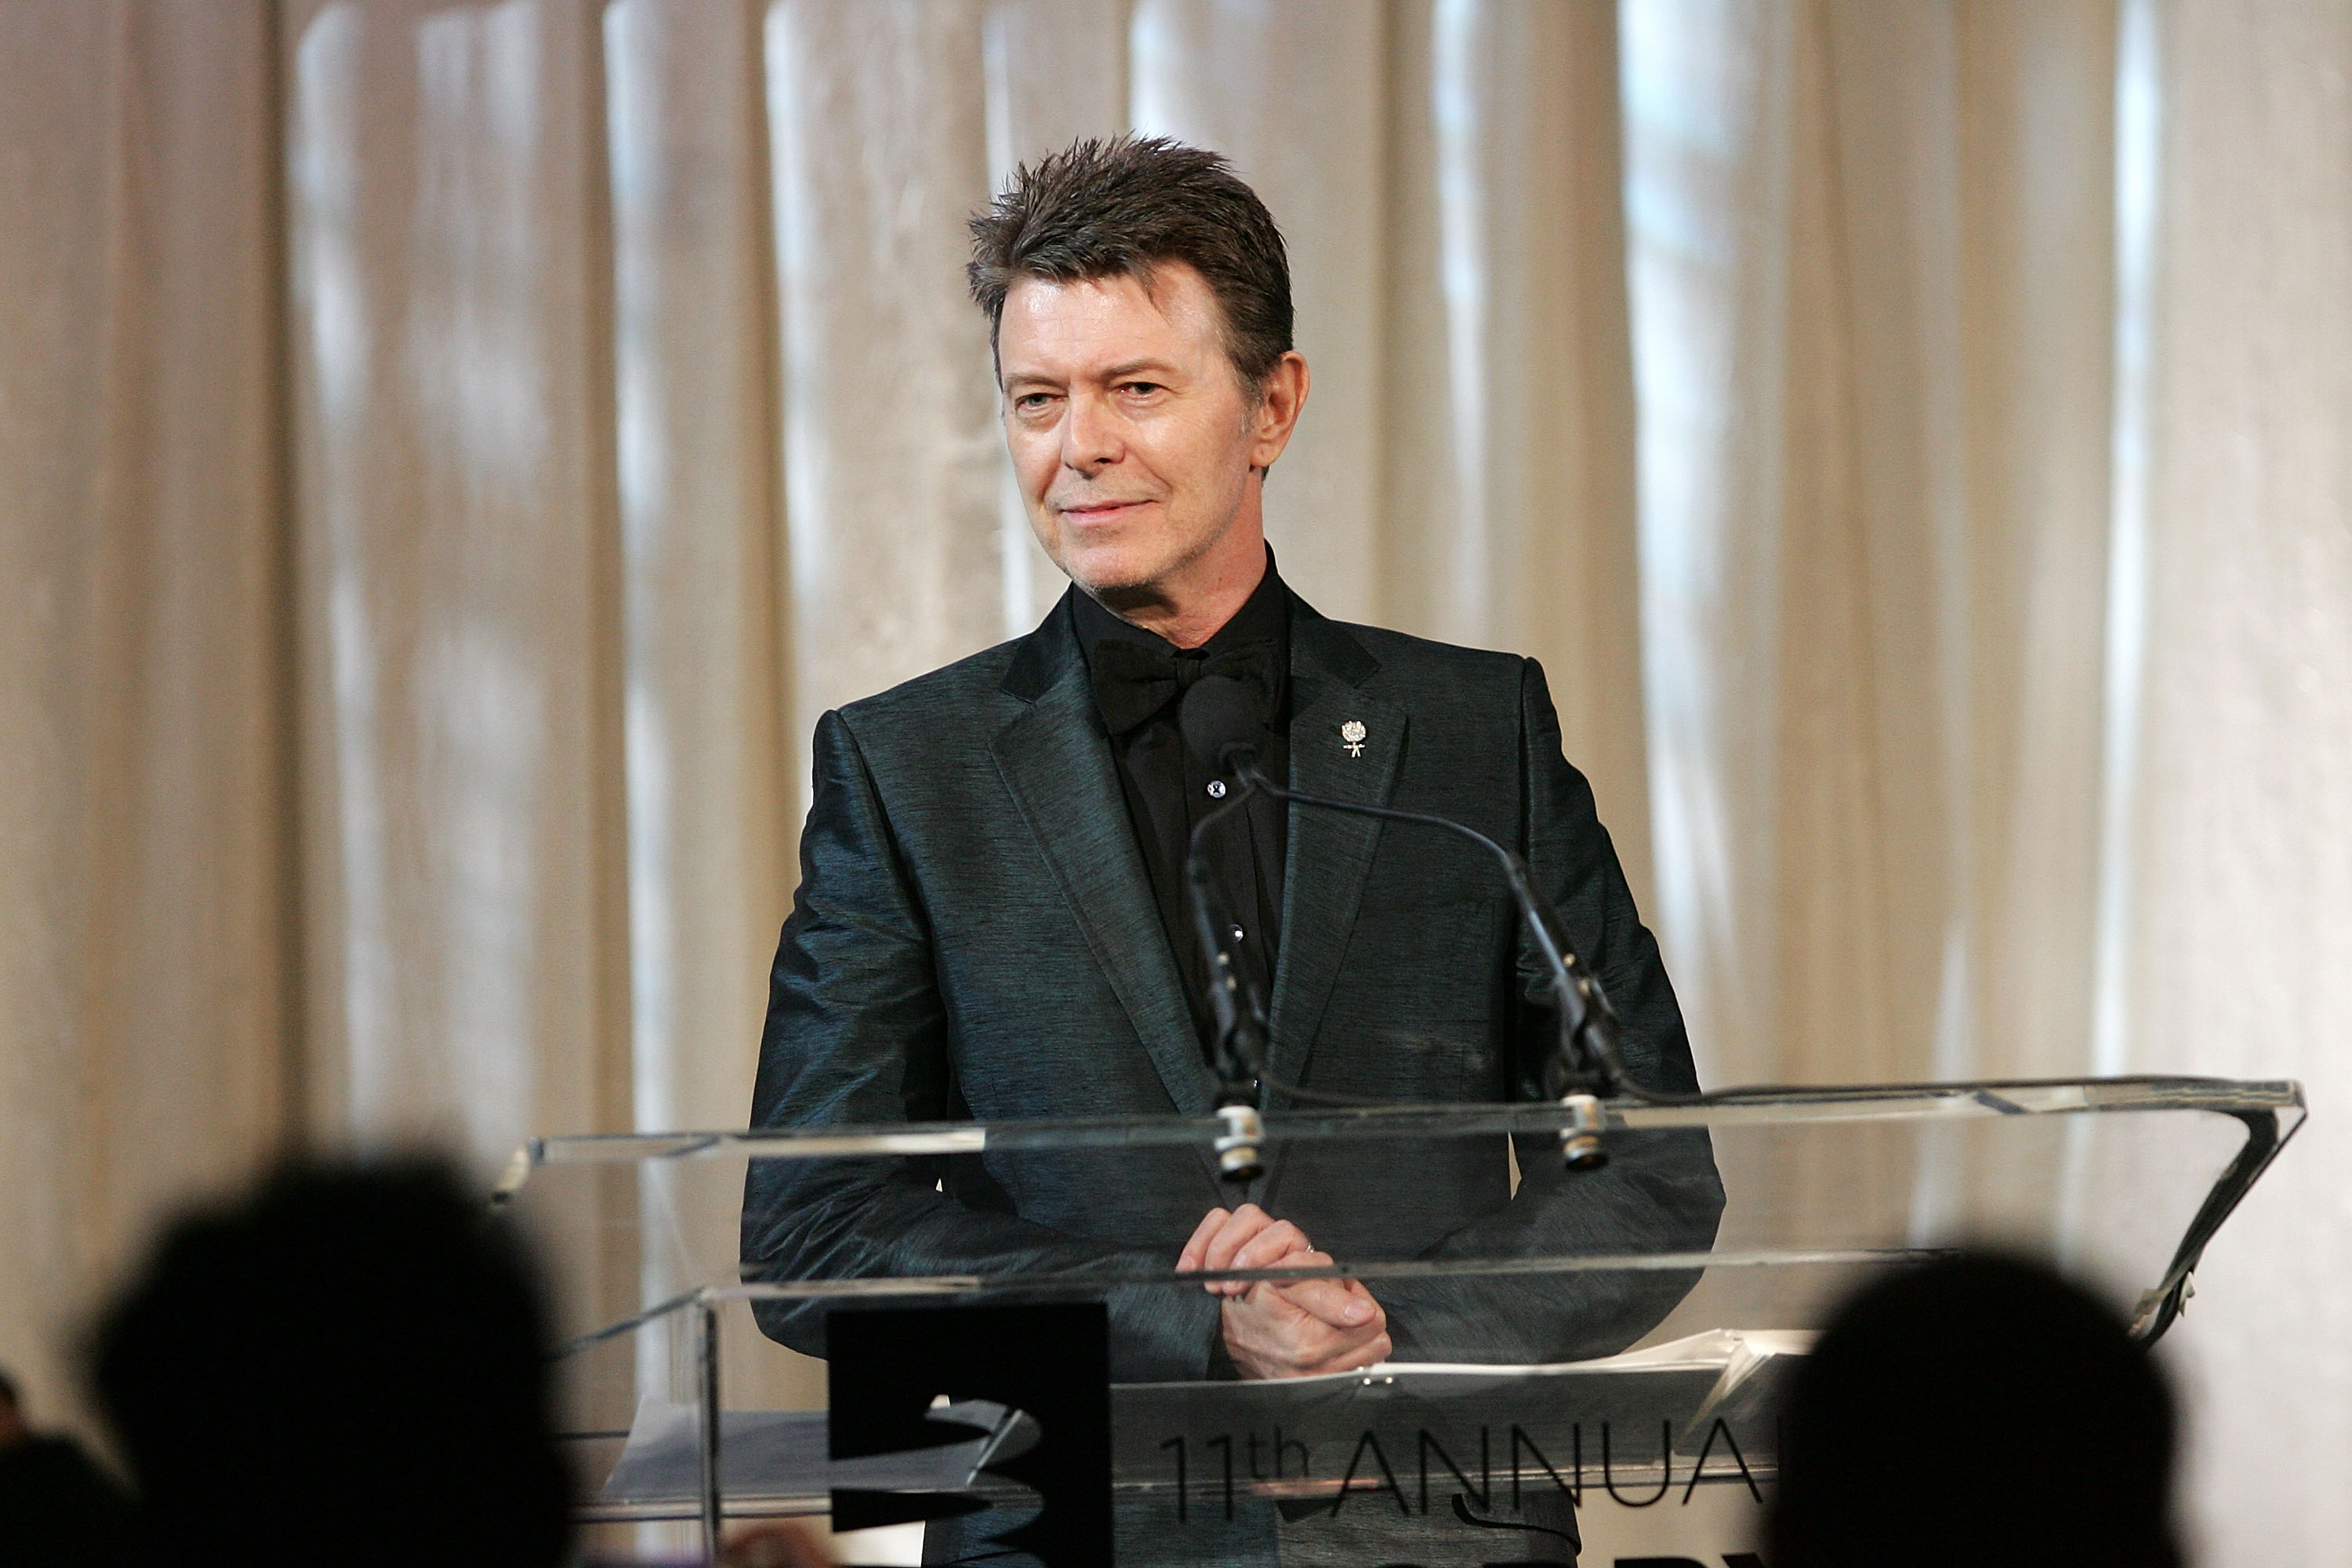 David Bowie accepts the Webby Lifetime Achievement award at the 11th Annual Webby Awards at Chipriani Wall Street on June 5, 2007 in New York City.